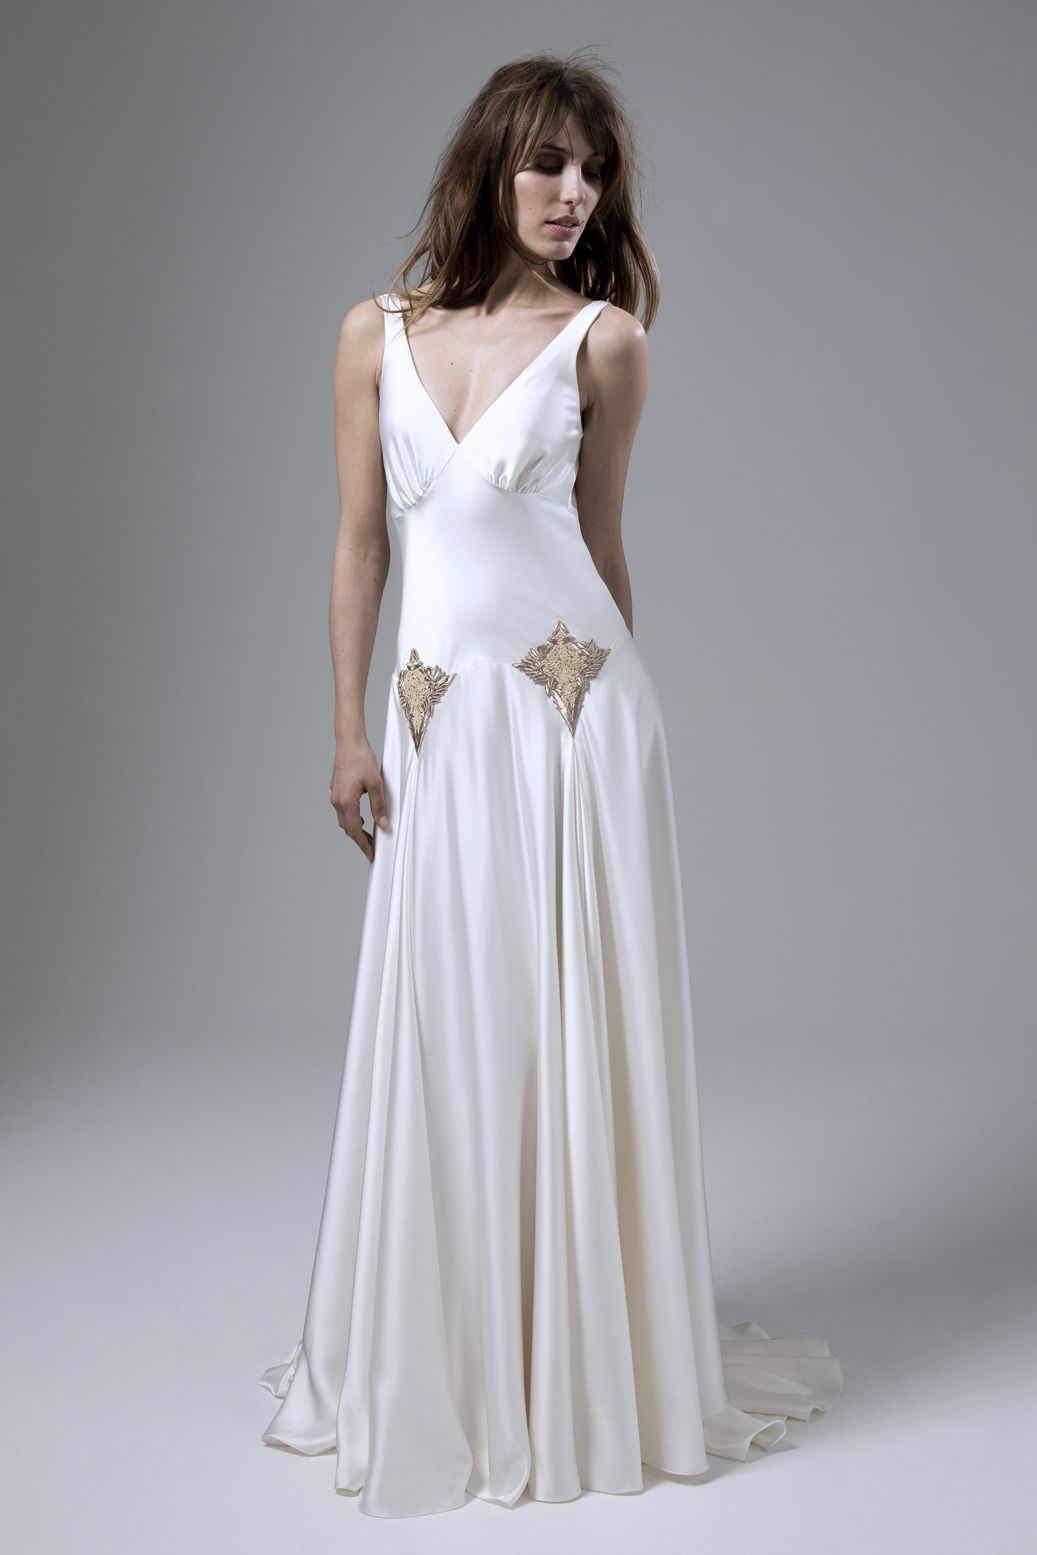 Milly our dress of the week wedding dress weddings and wedding